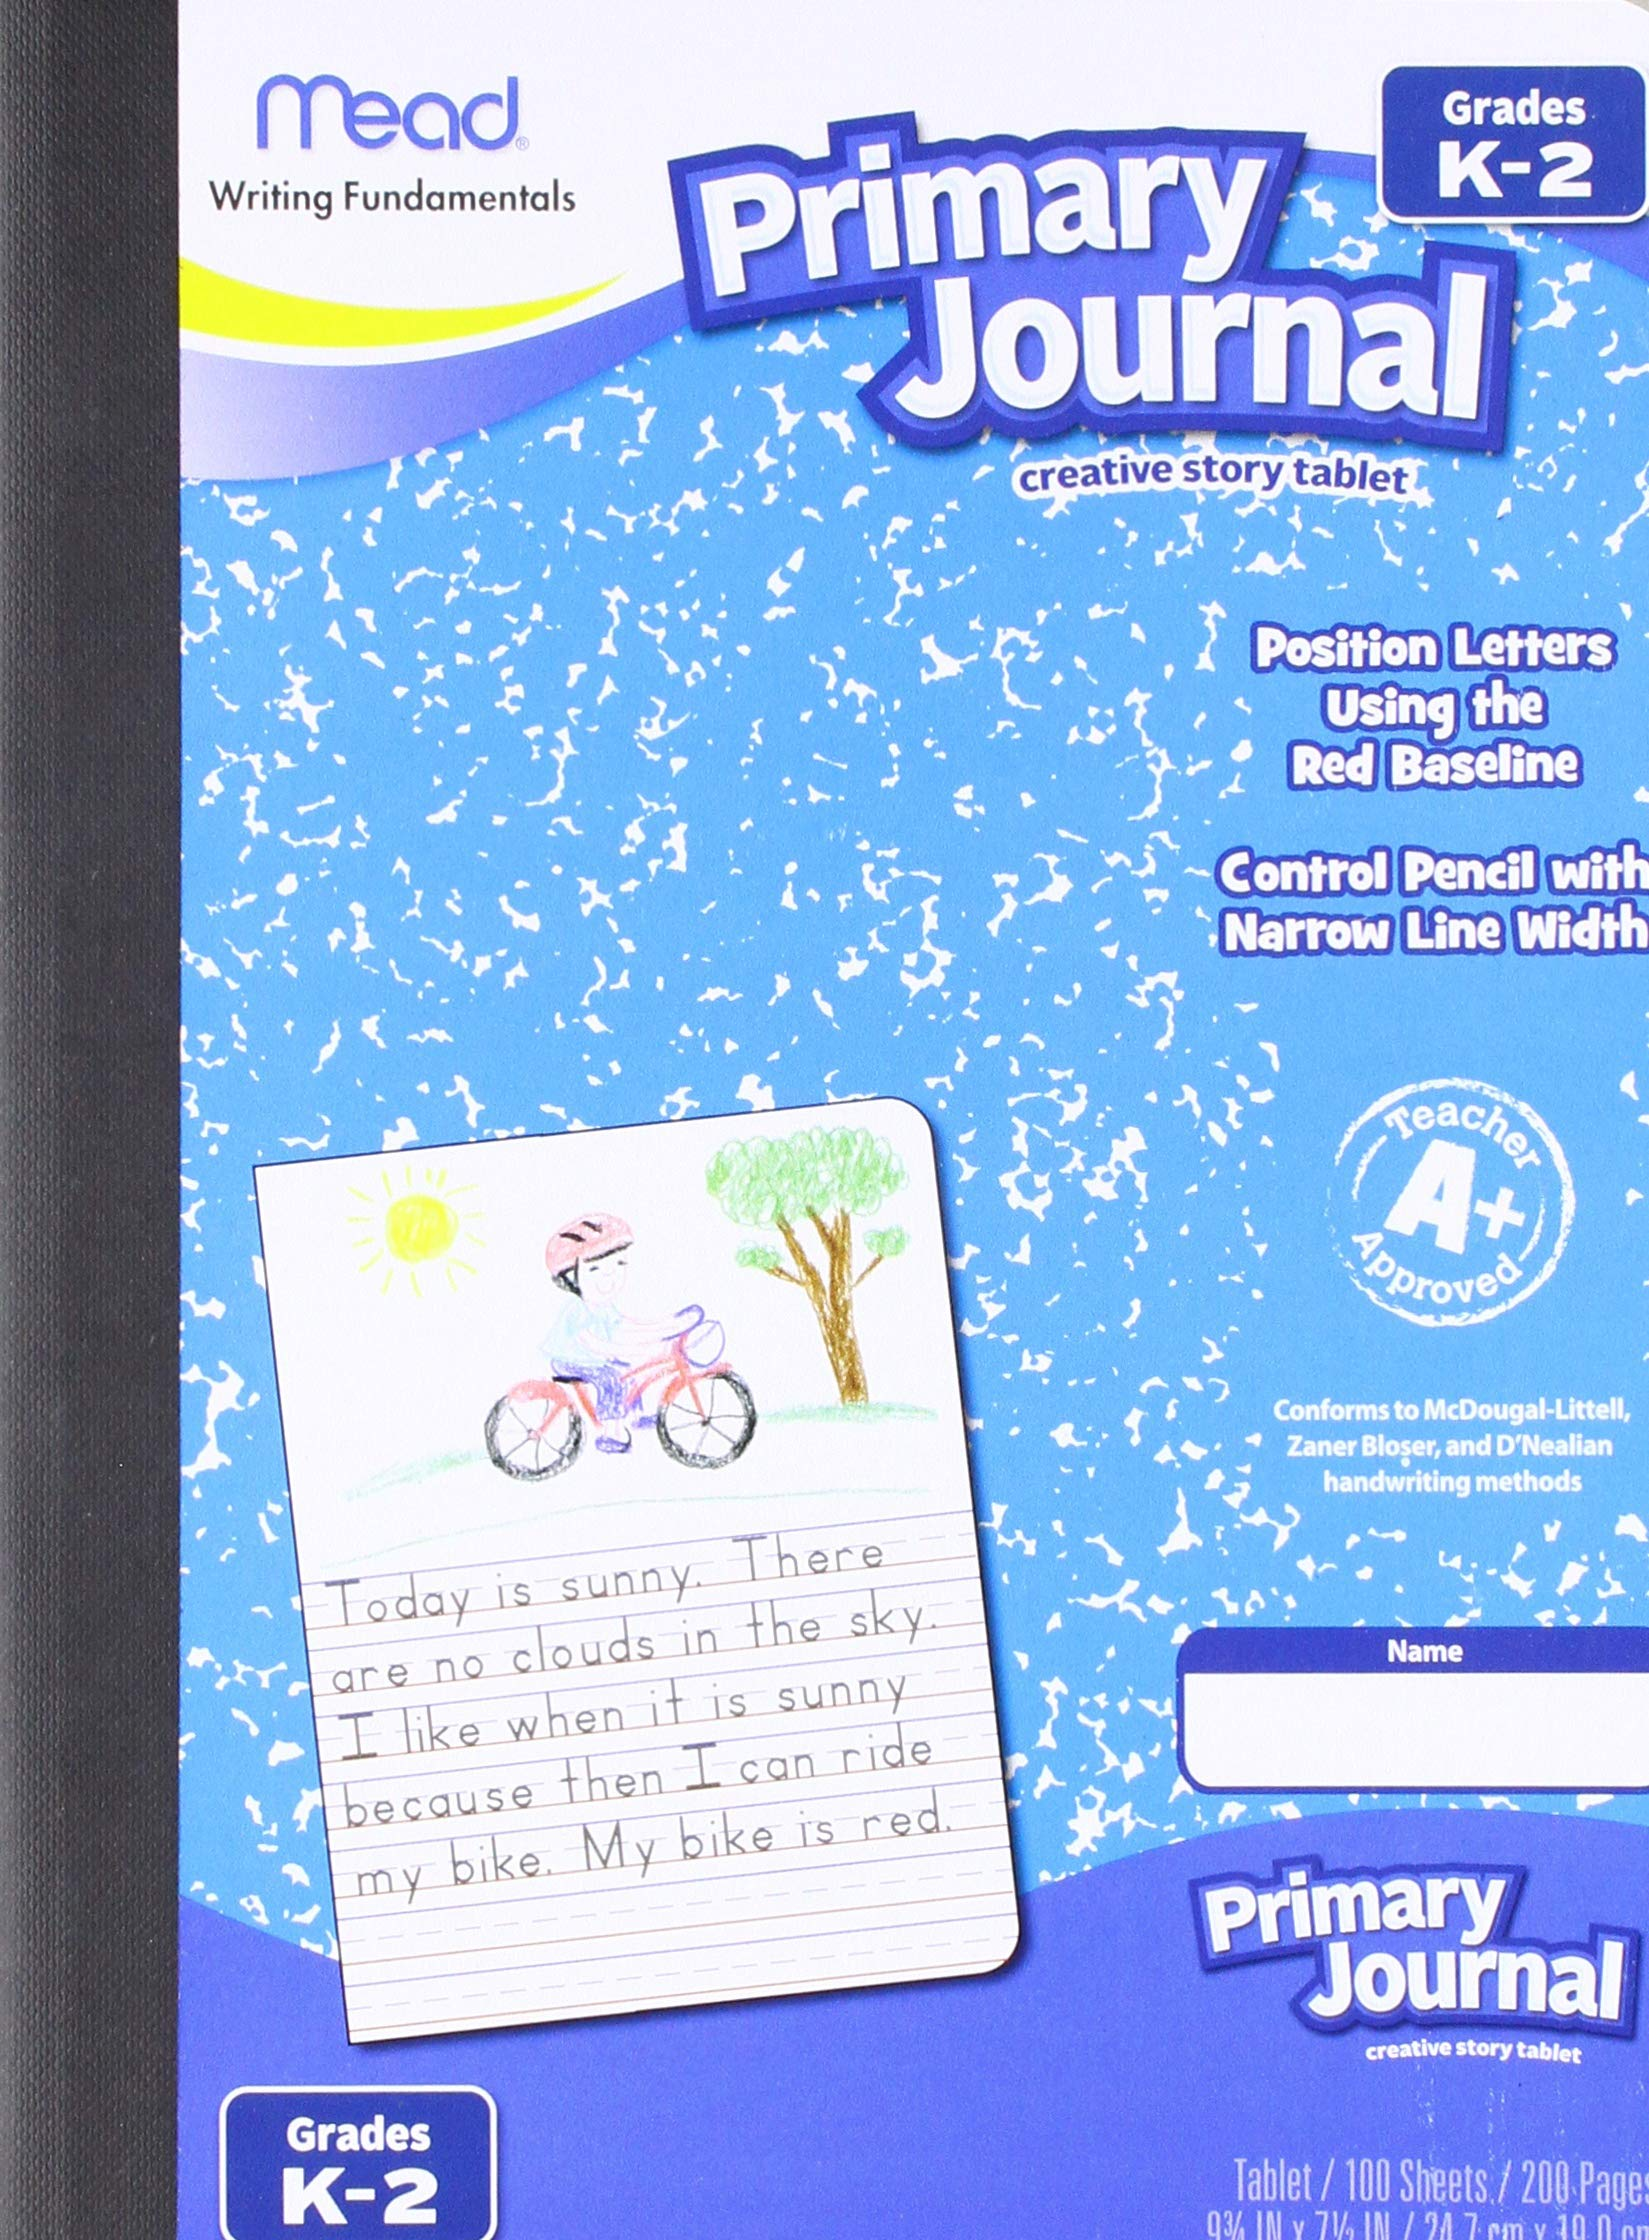 Mead Gr K-2 Classroom Primary Journal Story Tablet - 100 Sheets - 7 1/2'' x 9 4/5'' - Assorted Cover - 12/Carton (09554CT)